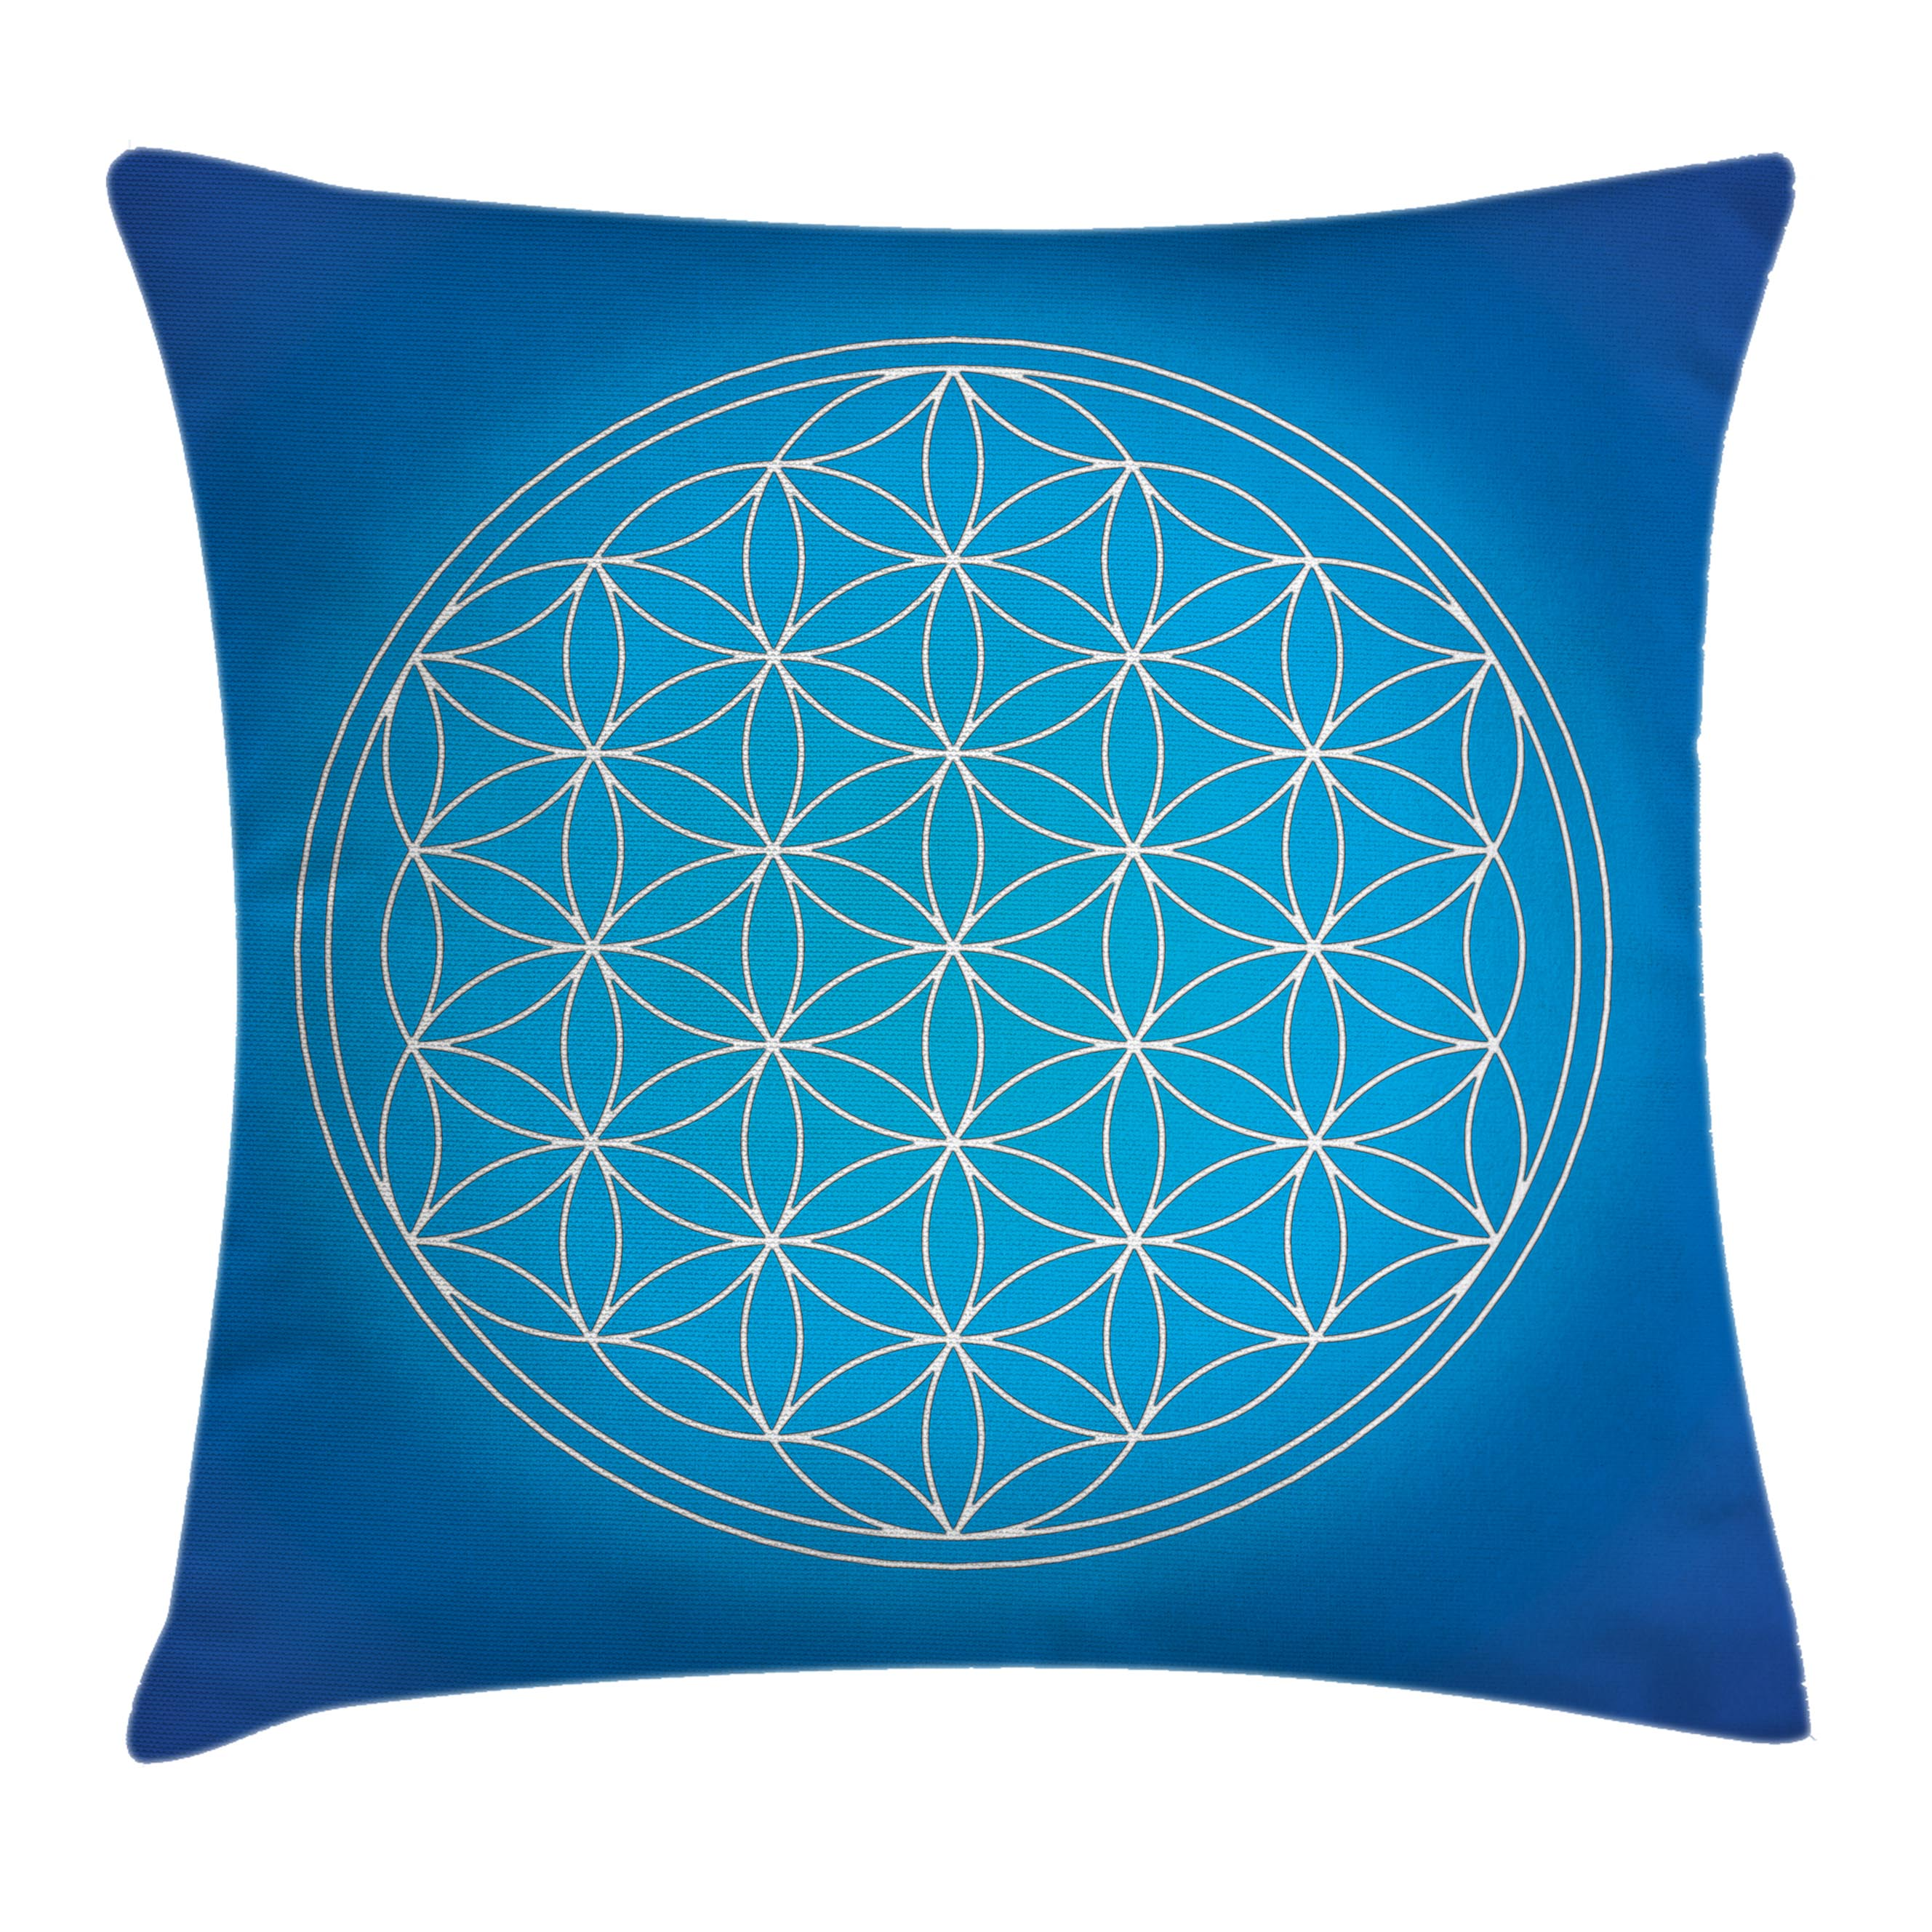 Sacred Geometrty Decor Throw Pillow Cushion Cover, Flower of Life Grid Pattern Consisting of Types Overlapping Circles Theme, Decorative Square Accent Pillow Case, 18 X 18 Inches, Blue, by Ambesonne